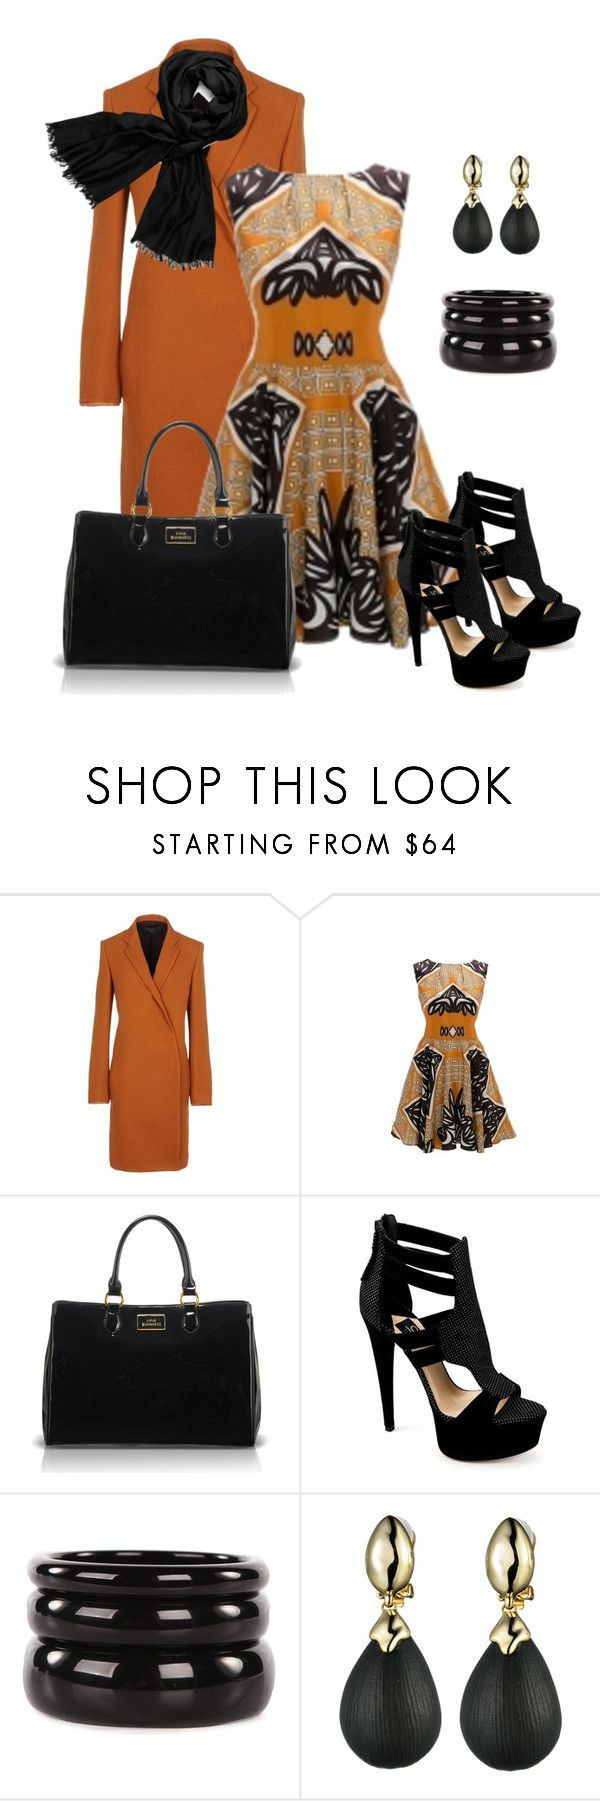 """""""Off to High Tea........"""" by grlowry ❤ liked on Polyvore featuring Haider Ackermann, Lulu Guinness, ISLO, See by Chloé, Alexis Bittar and Tory Burch"""